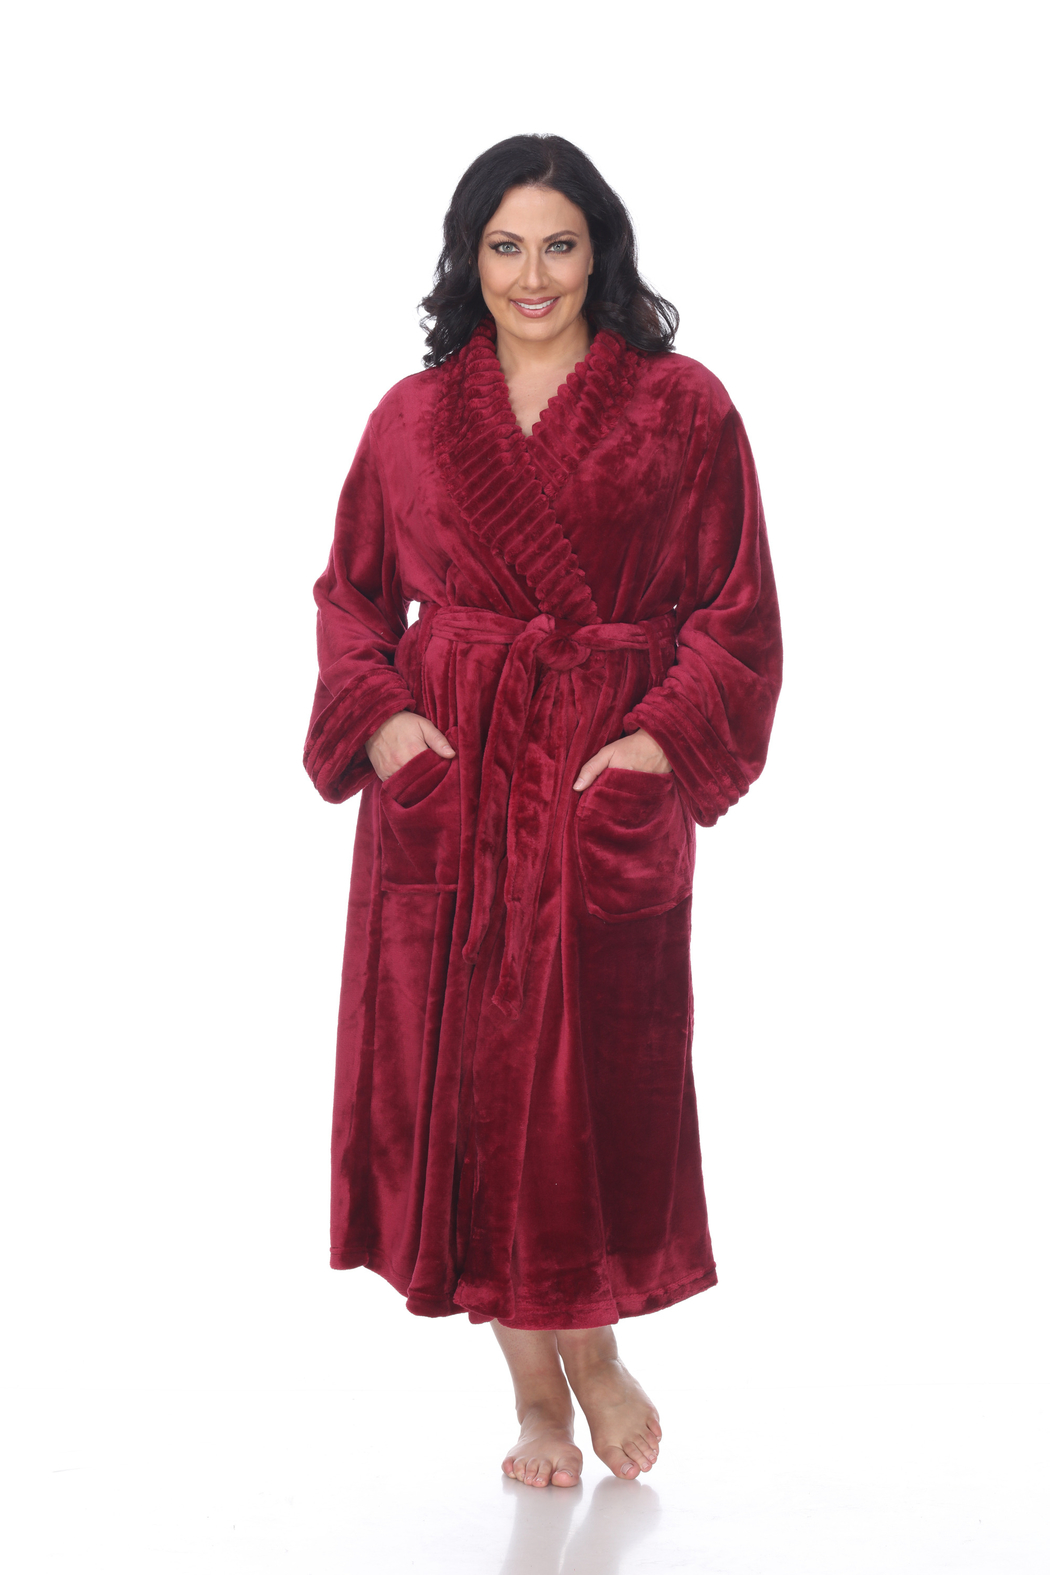 WhiteMark White Mark's Super Soft Plus Size Lounge Robe - Front Cropped Image